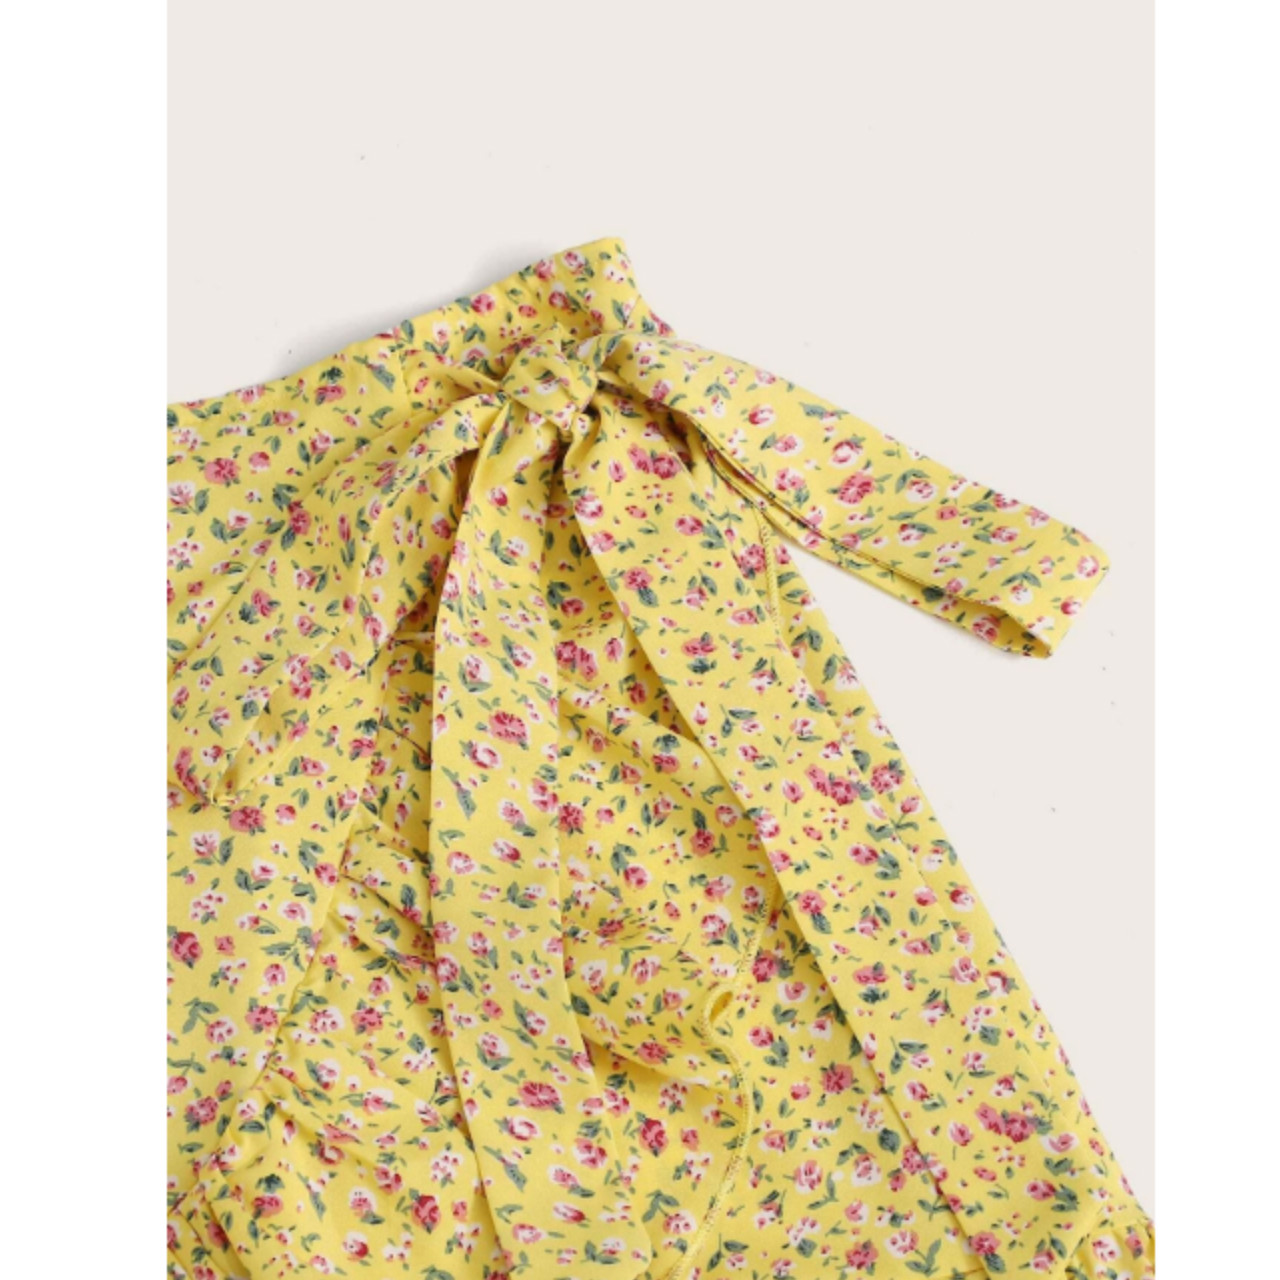 Ruffle trim wrap knotted ditsy floral skirt m